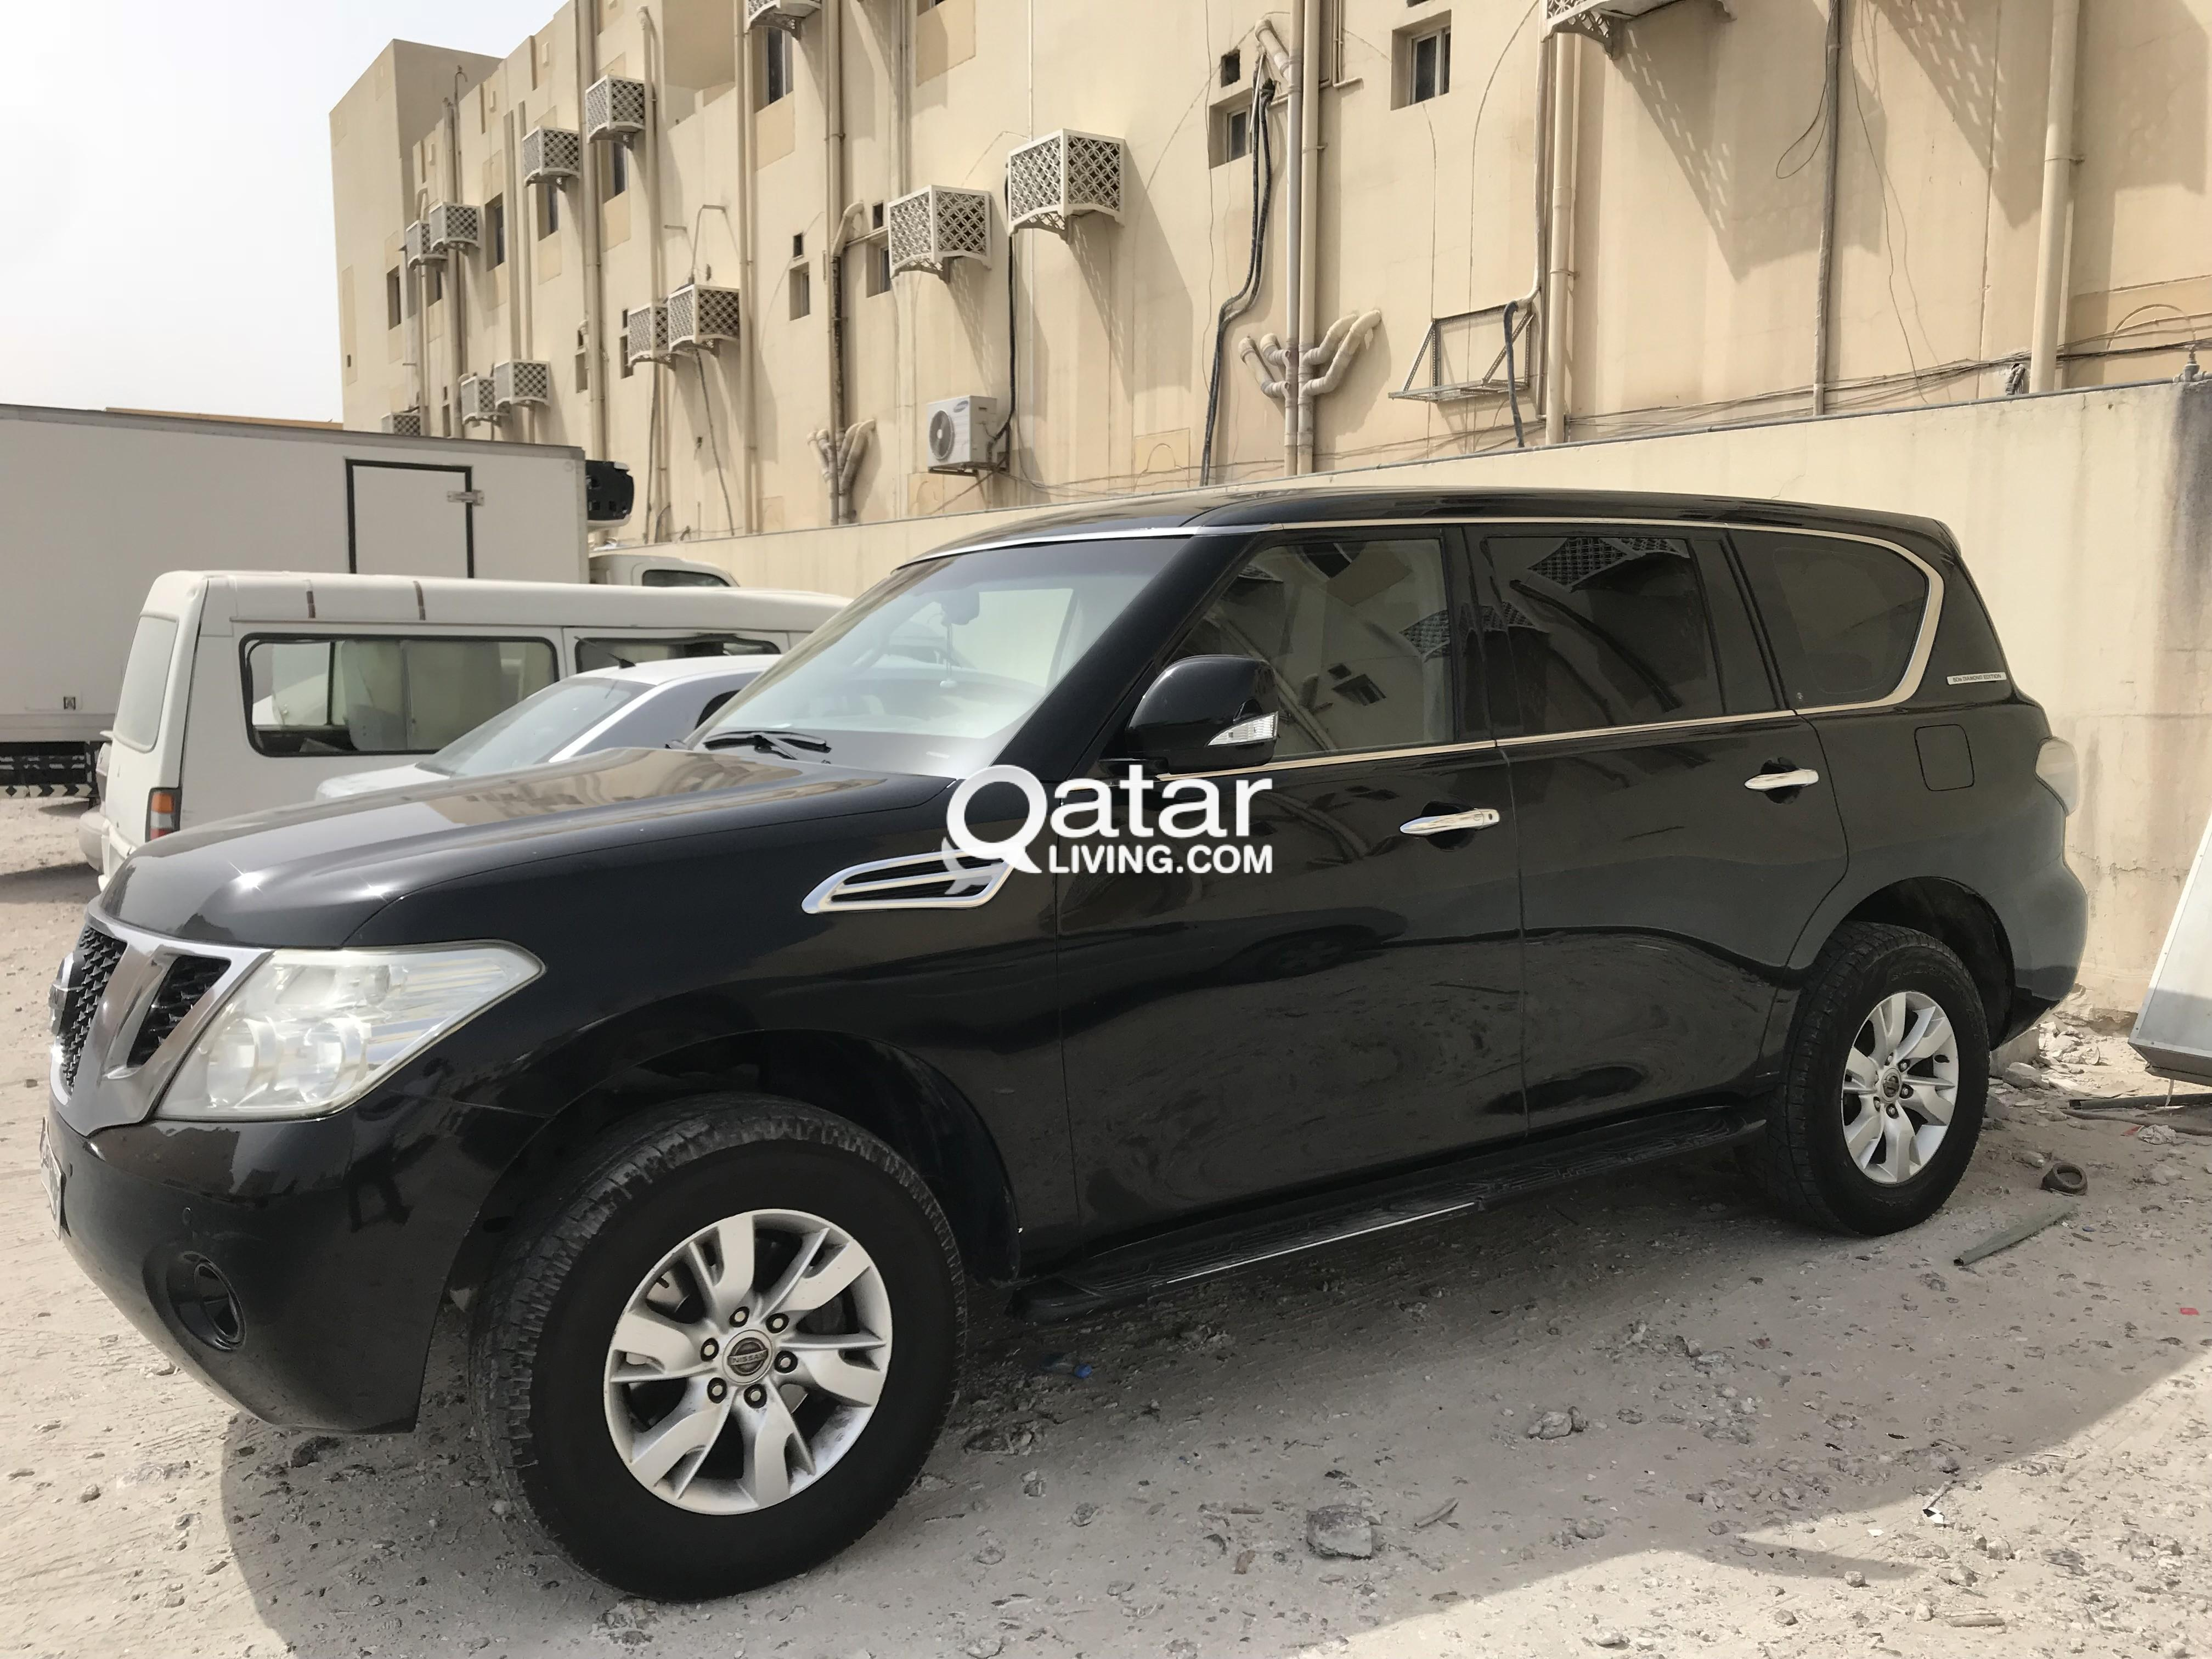 Nissan Patrol Family Used Car For Sale Qatar Living